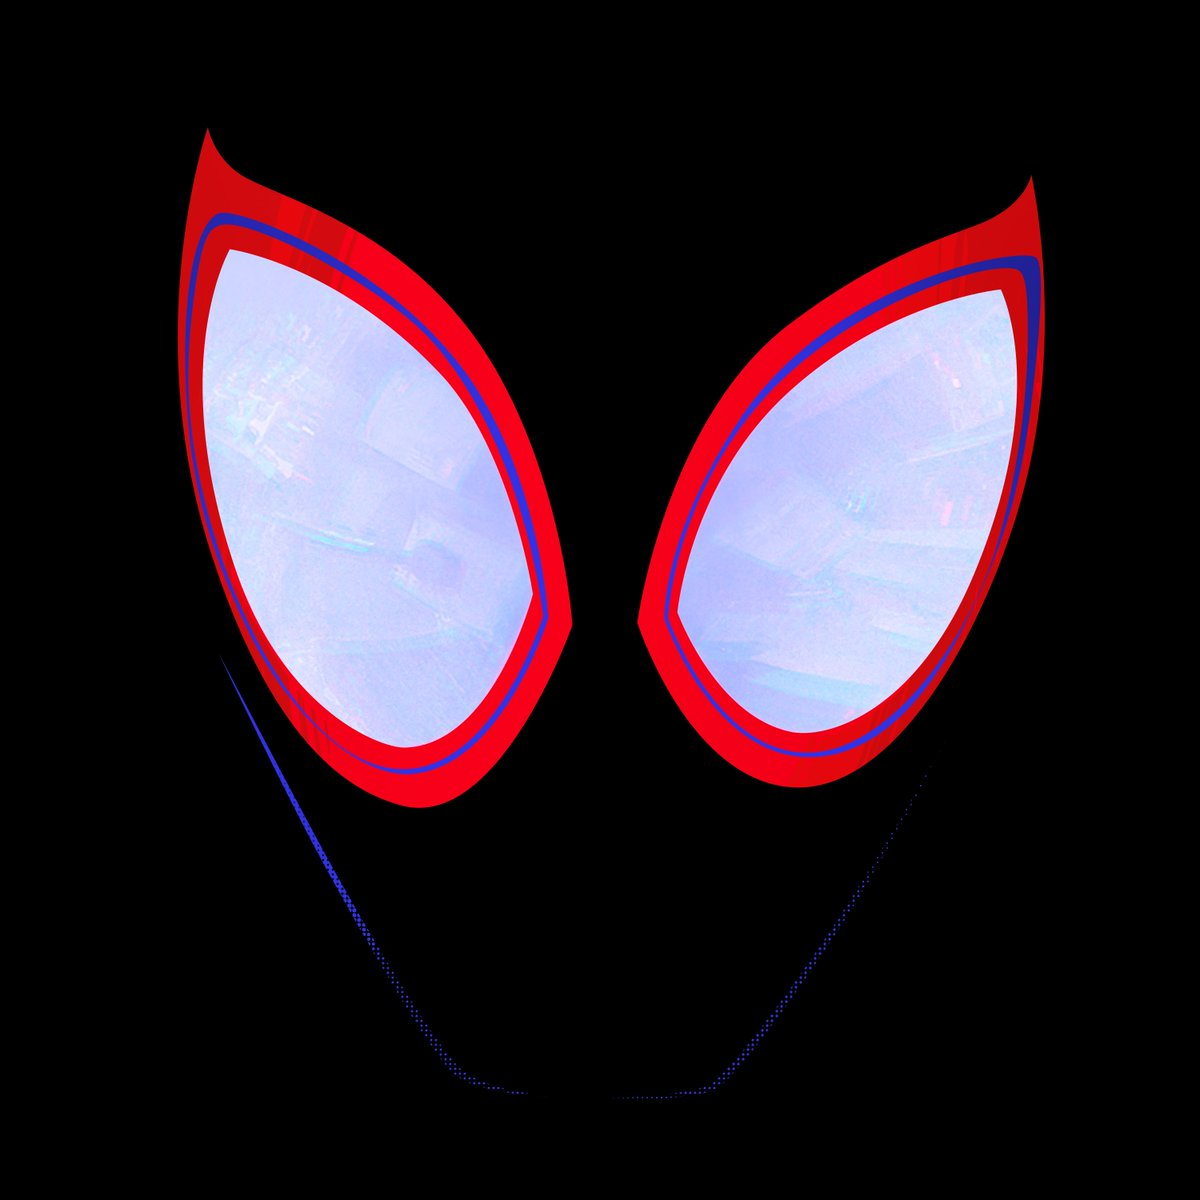 What makes you different is what makes you Spider-Man 🕸 The official #SpiderVerse soundtrack featuring @PostMalone, @NICKIMINAJ, @officialjaden, @vincestaples & more is out now https://t.co/UUkDTNIH74